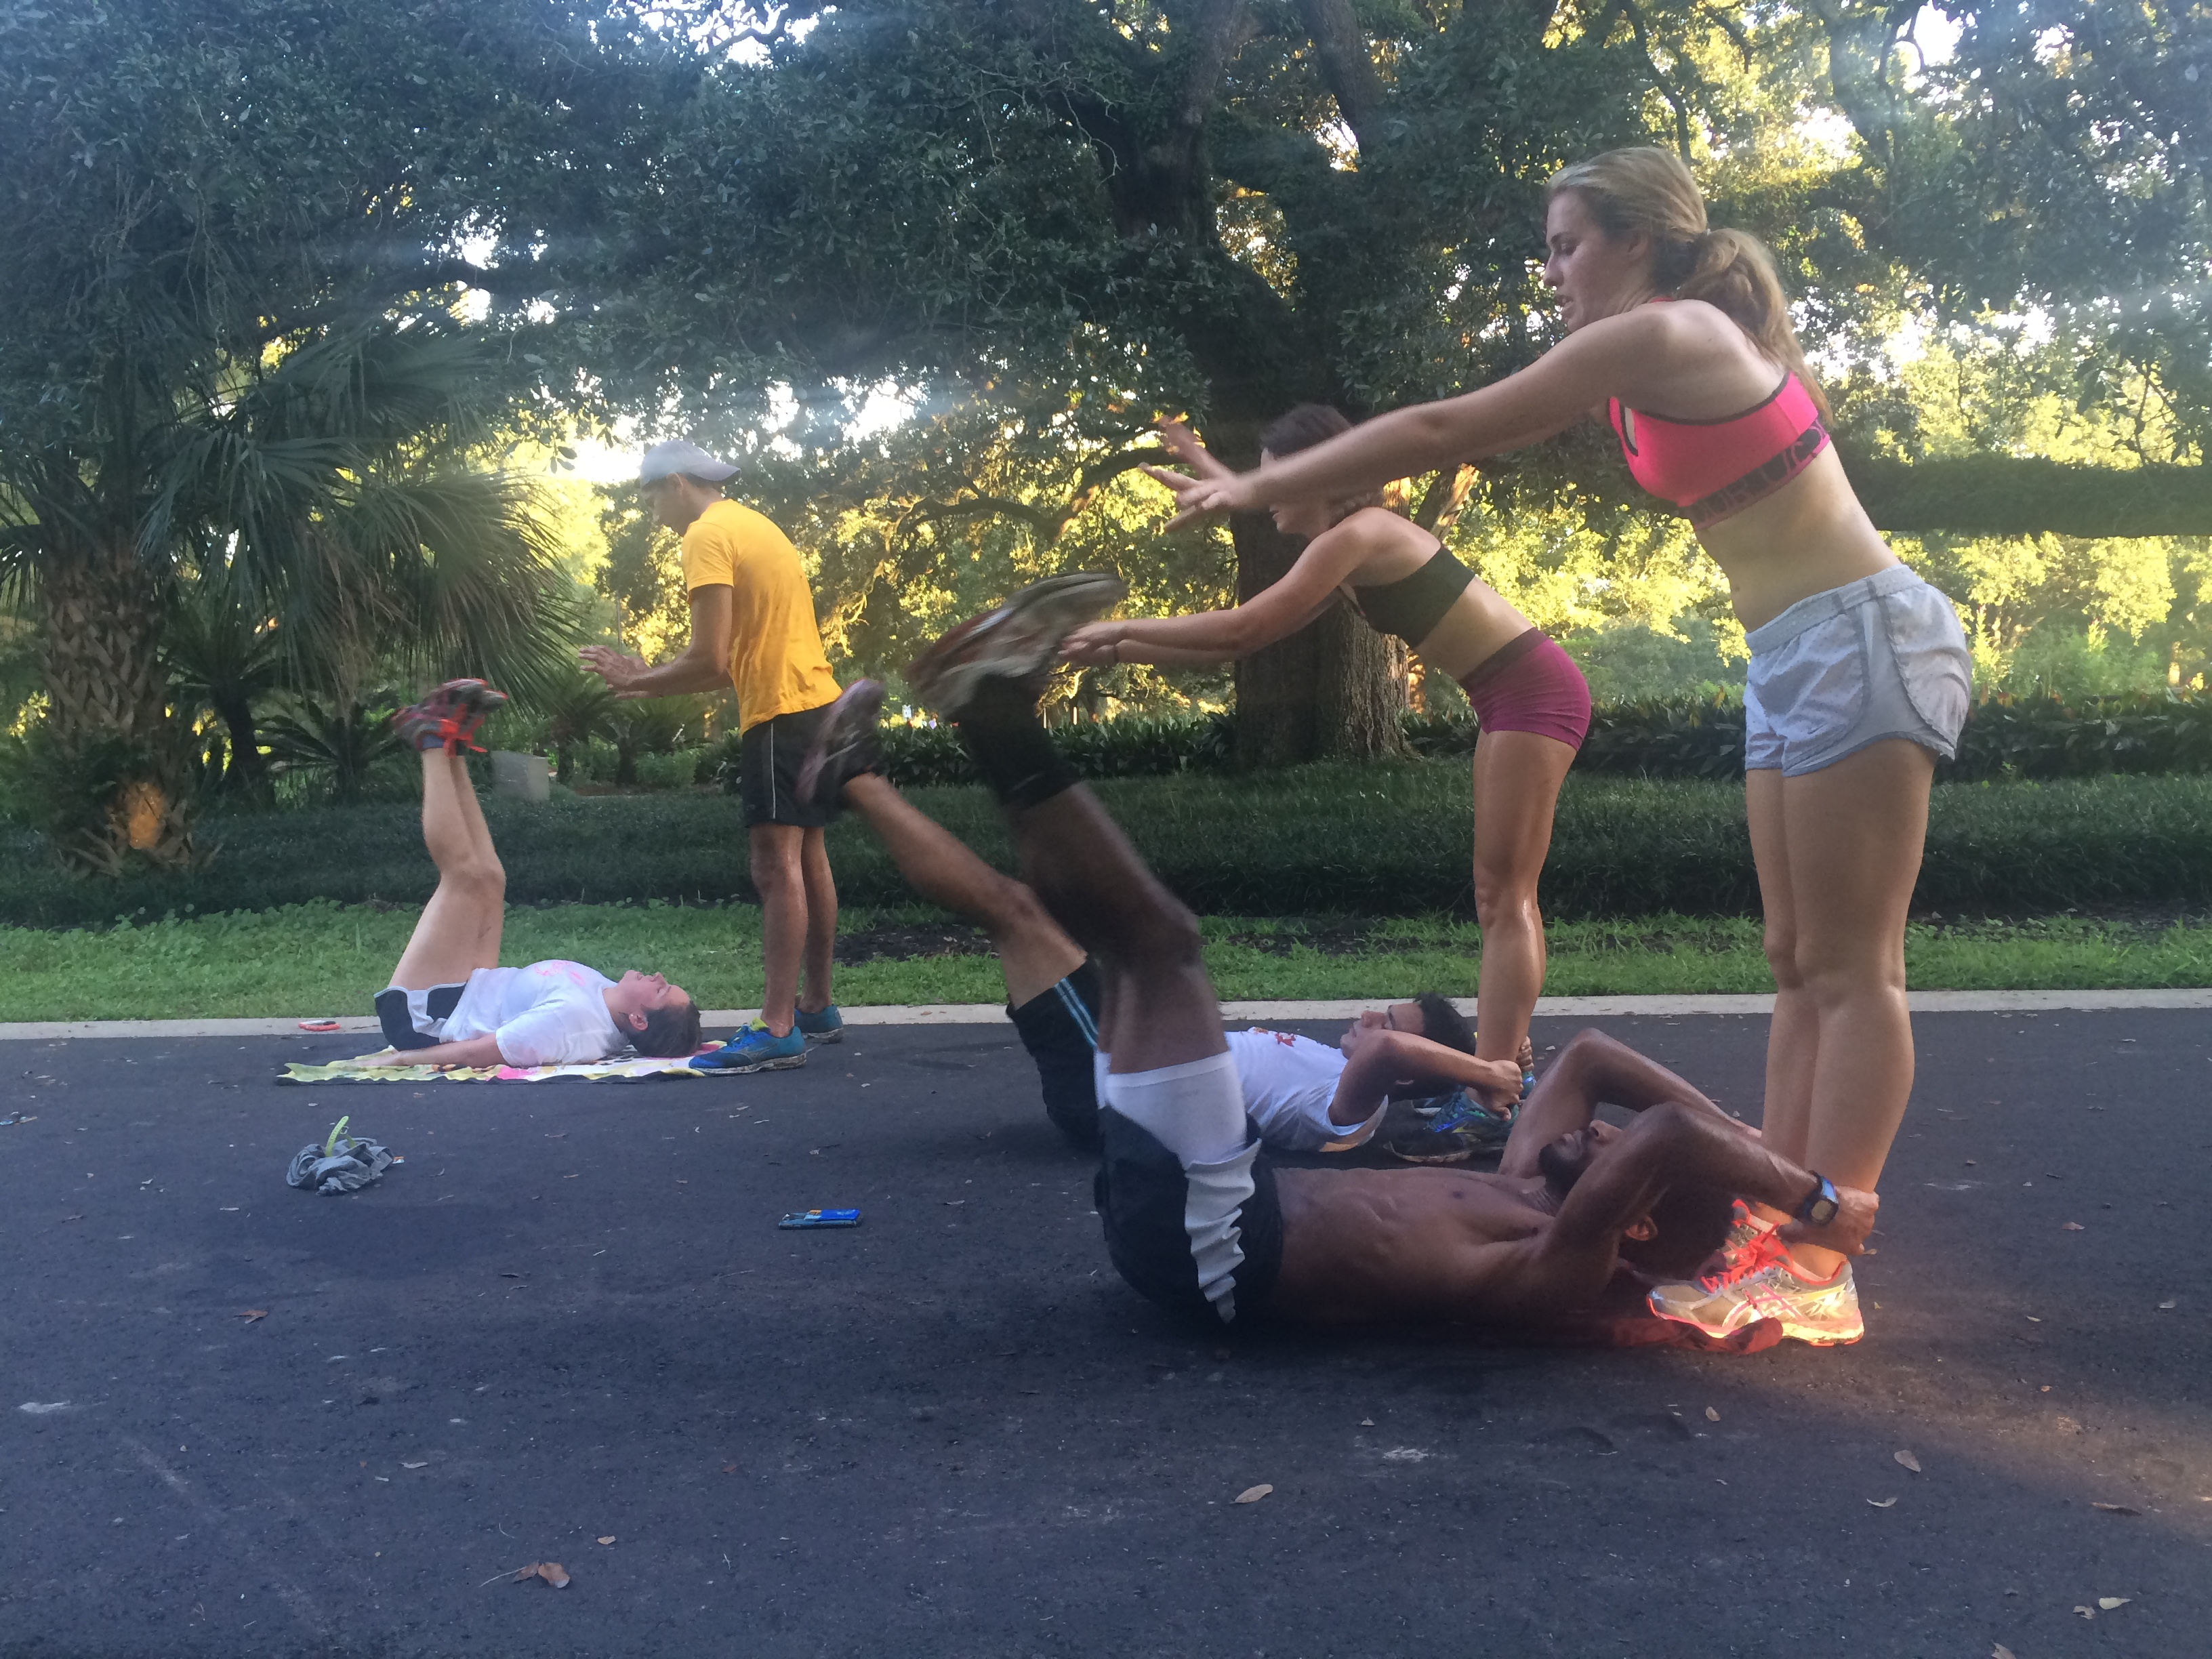 The cross country team does ab exercises after a run in Audubon Park in late August. The team finished the season with new records and few injuries. Photo credit: Colleen Dulle